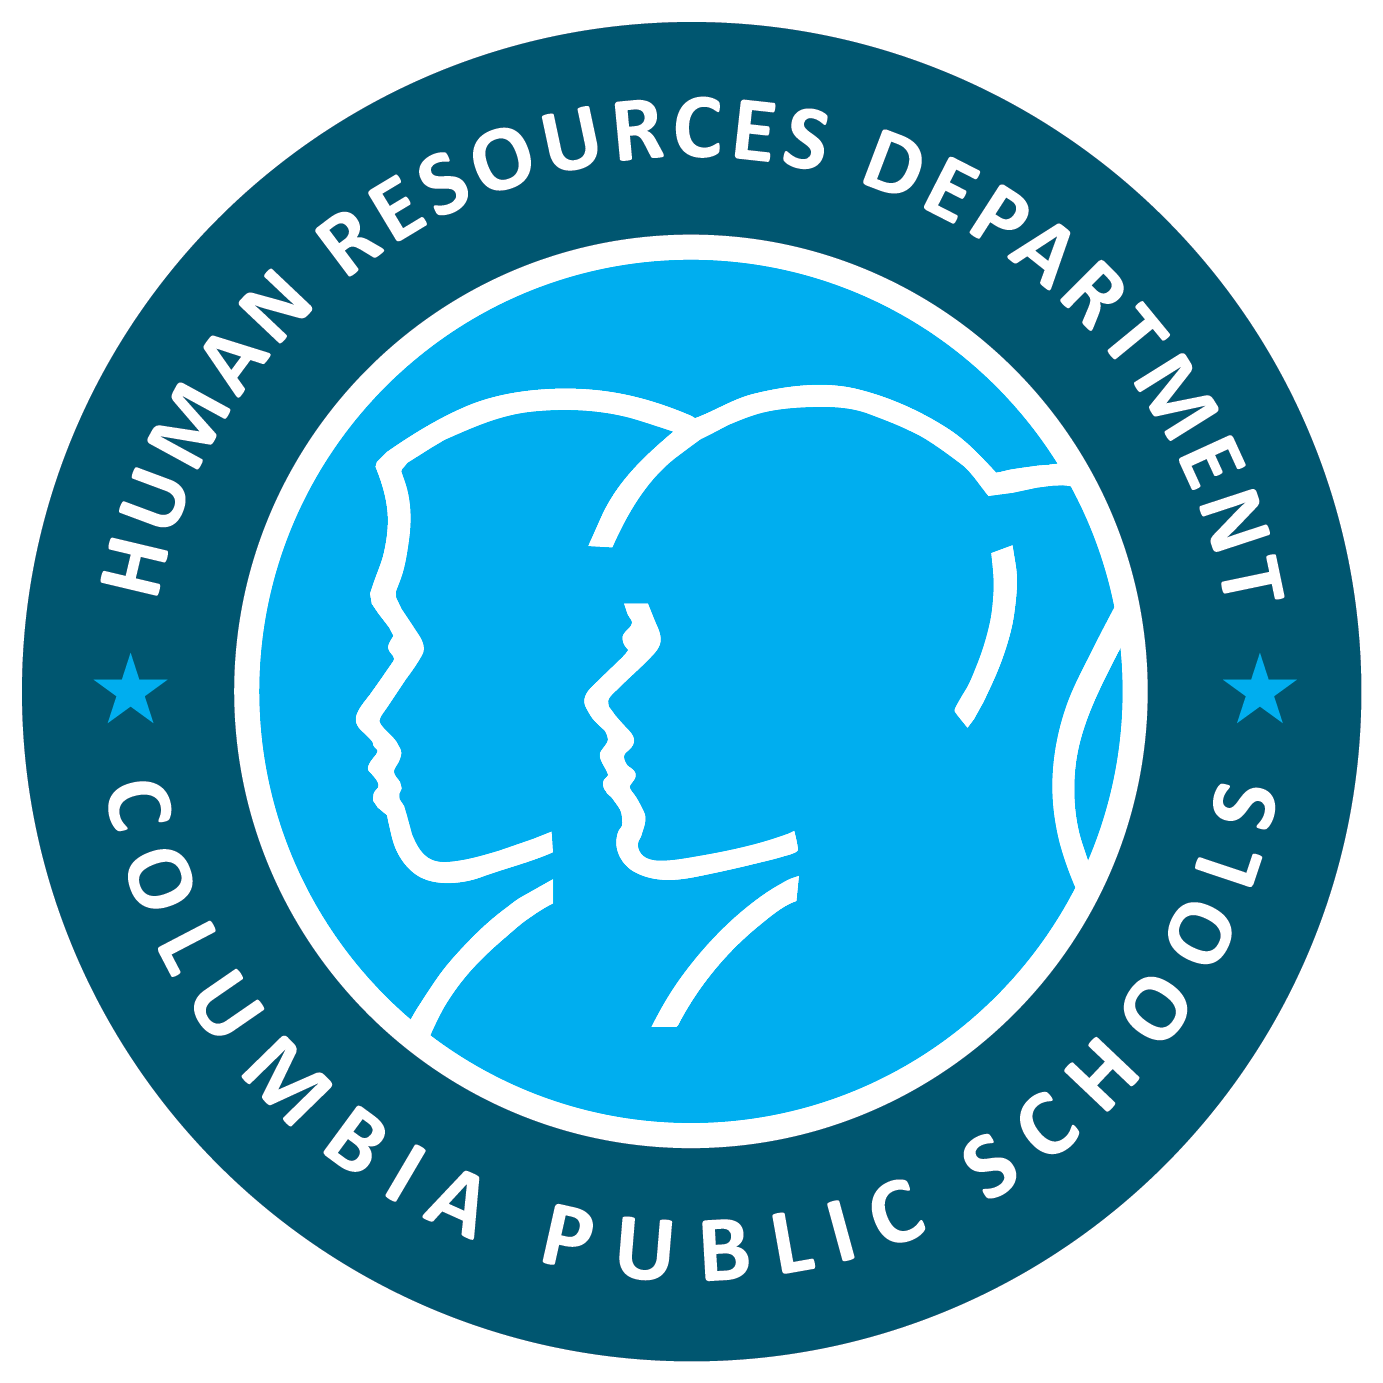 HumanResourcesDepartmentLogo